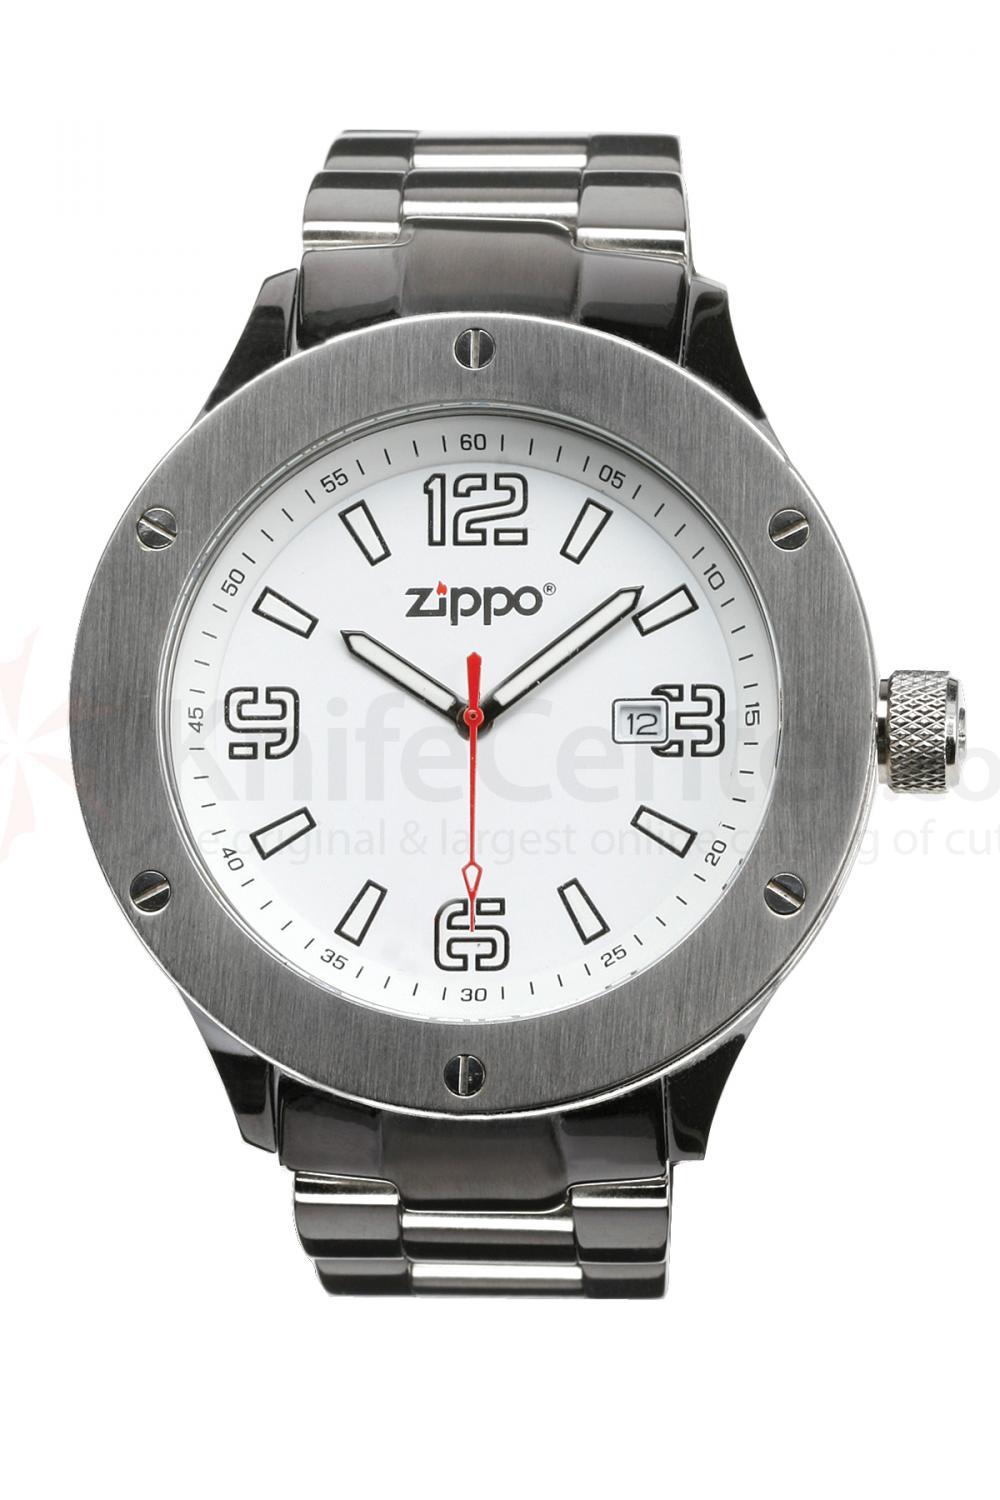 Zippo Watch White Face / Stainless Steel Band